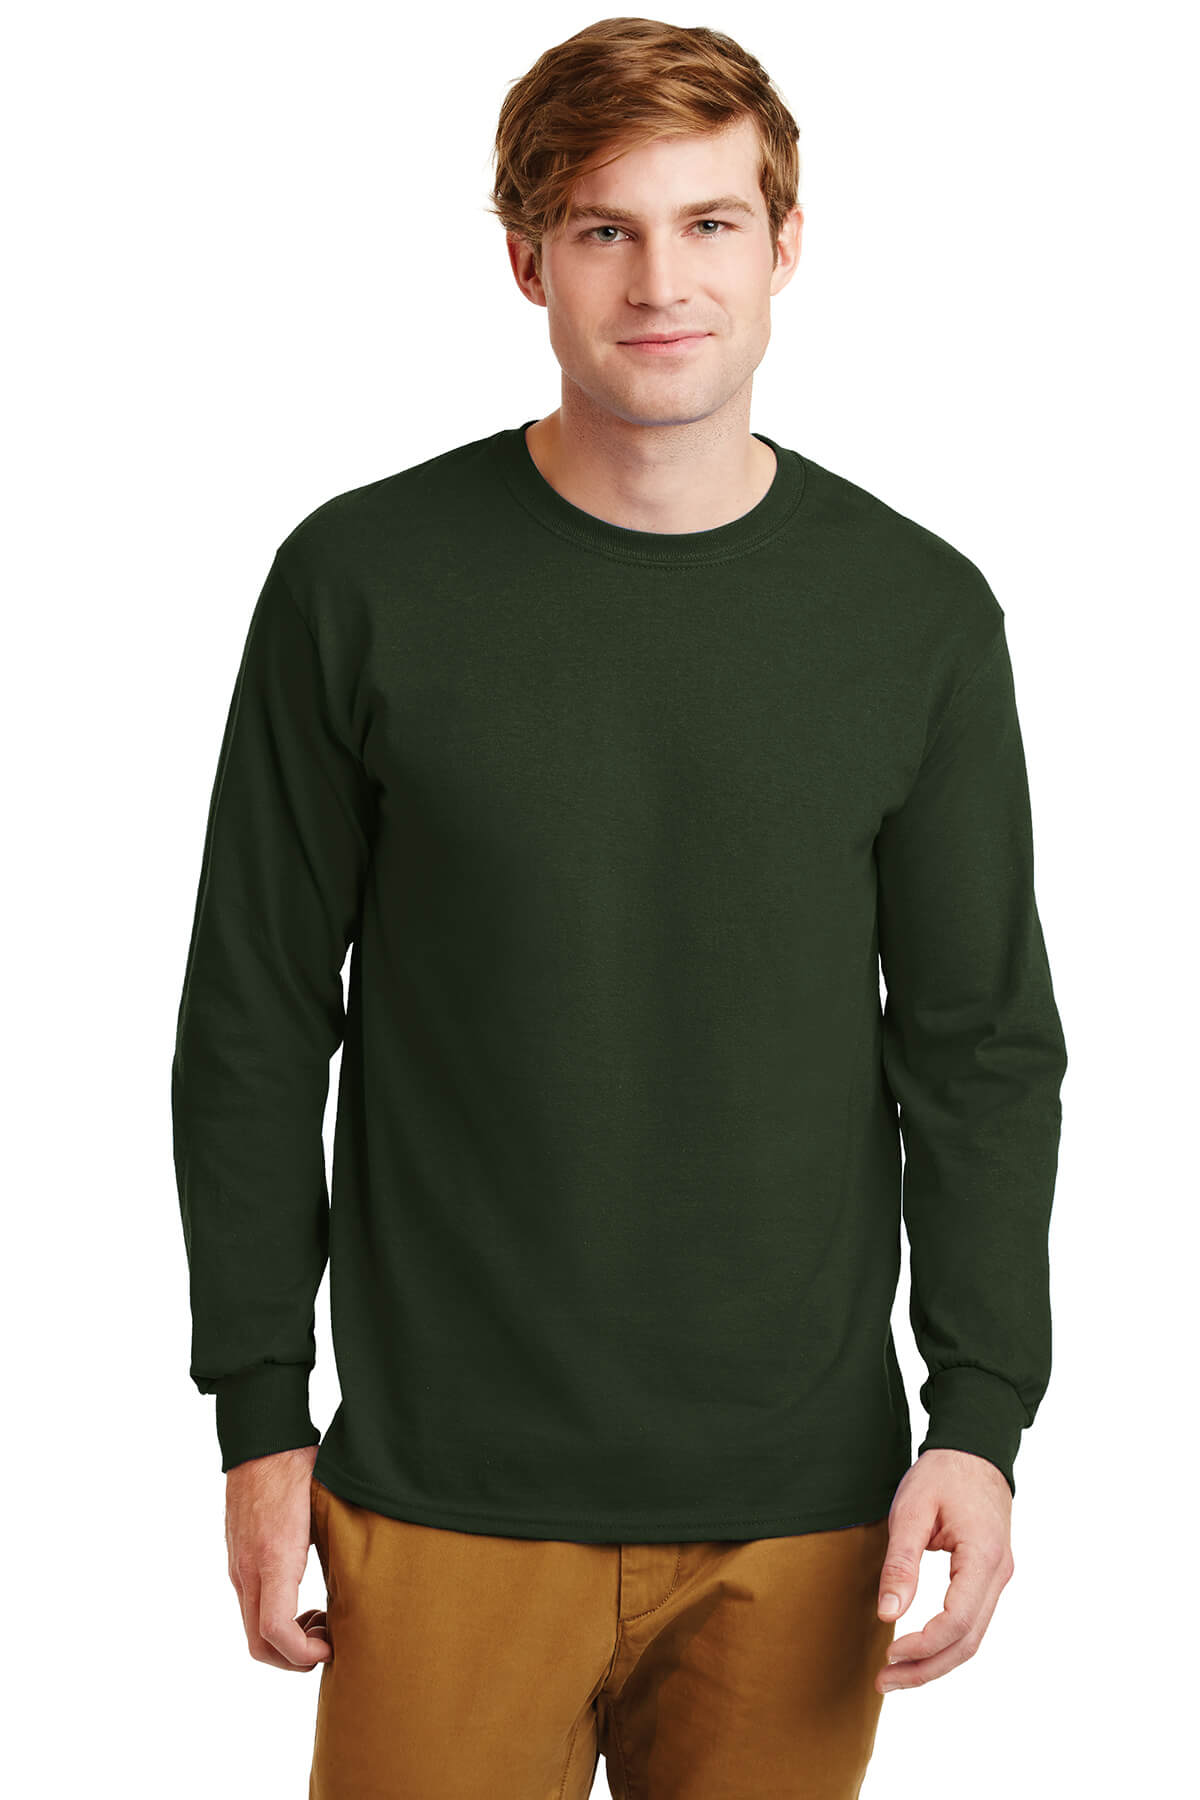 g2400-forest-green-1